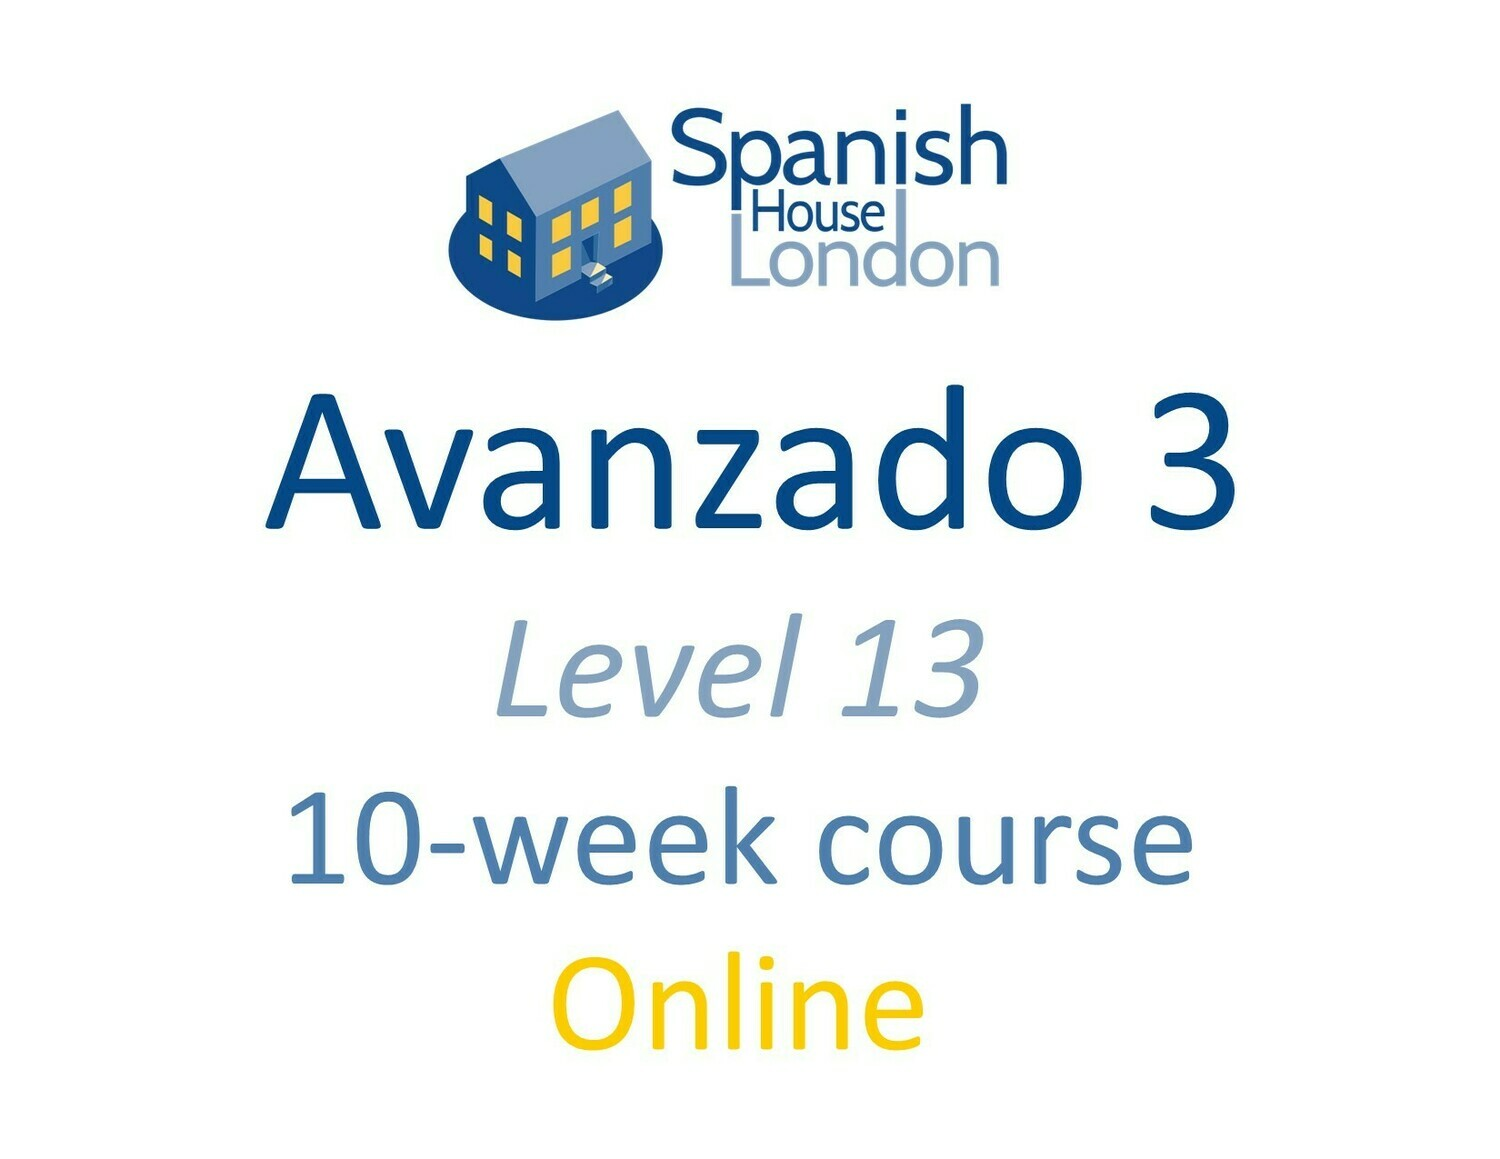 Avanzado 3 Course starting on 13th October at 7.30pm